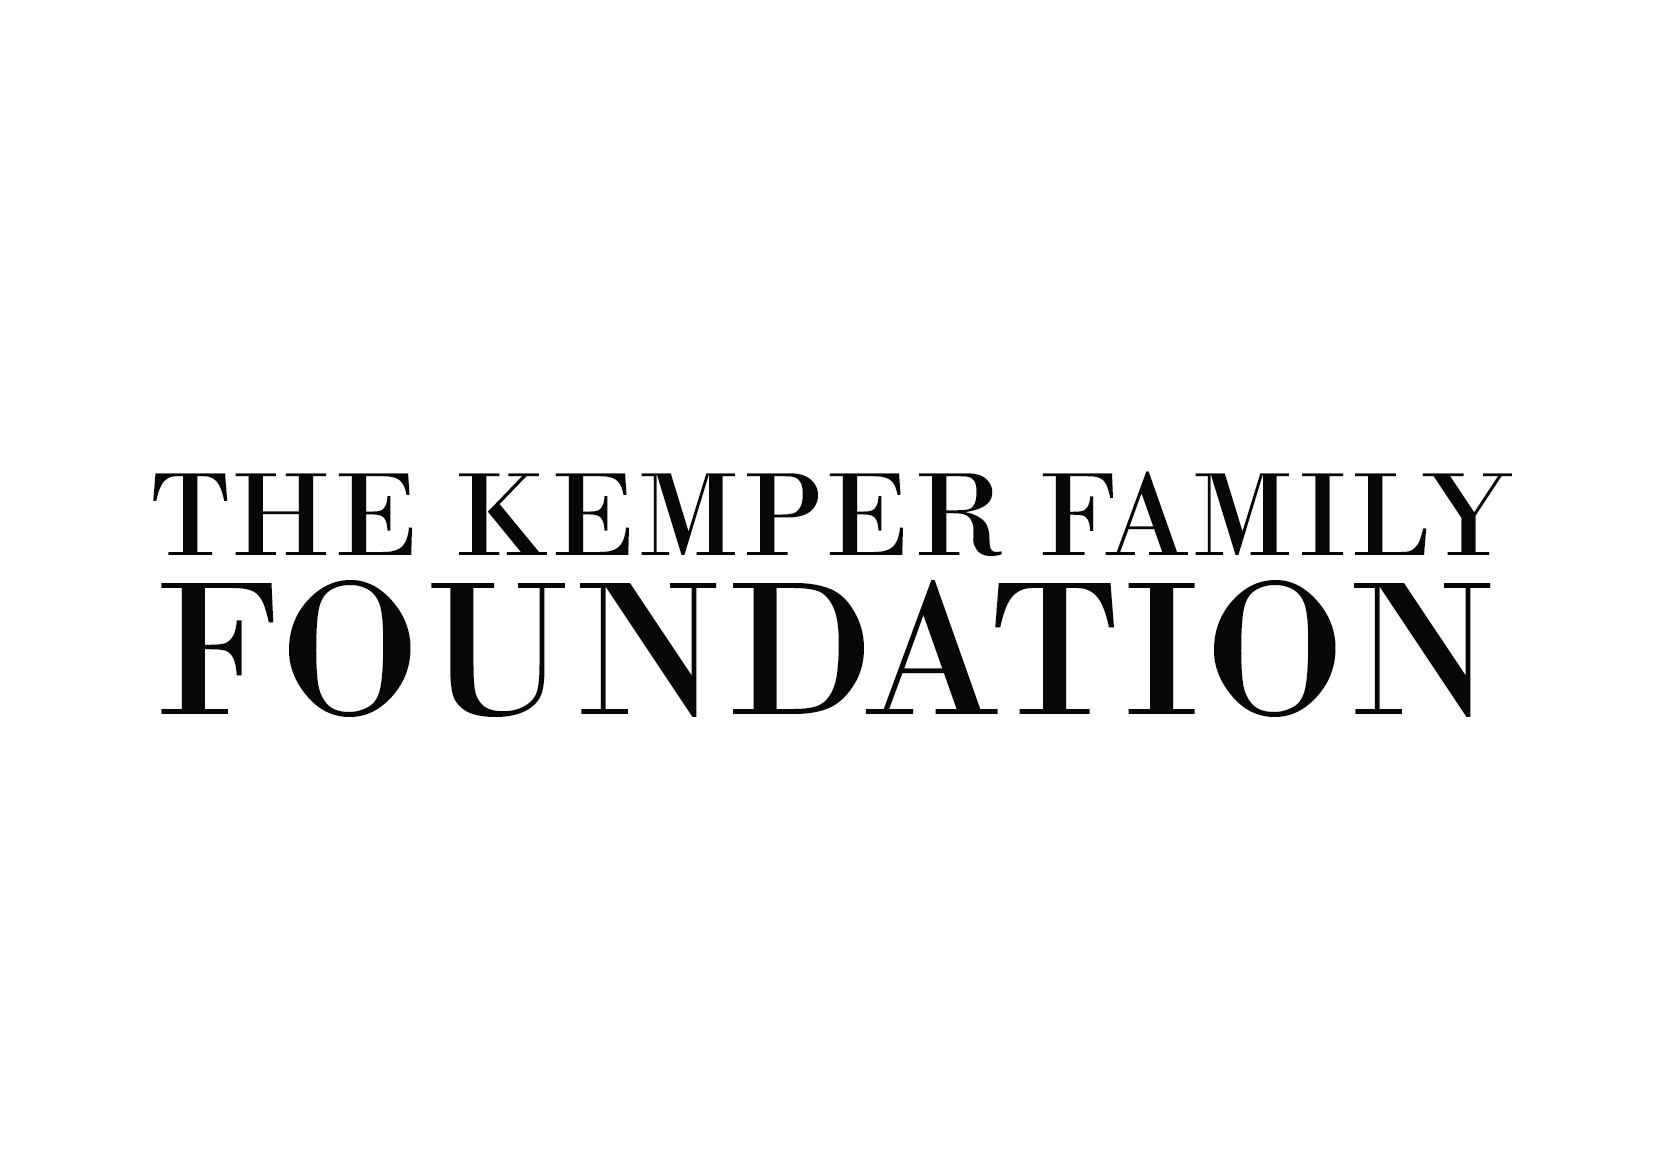 Kemper Family Foundation (UMB)